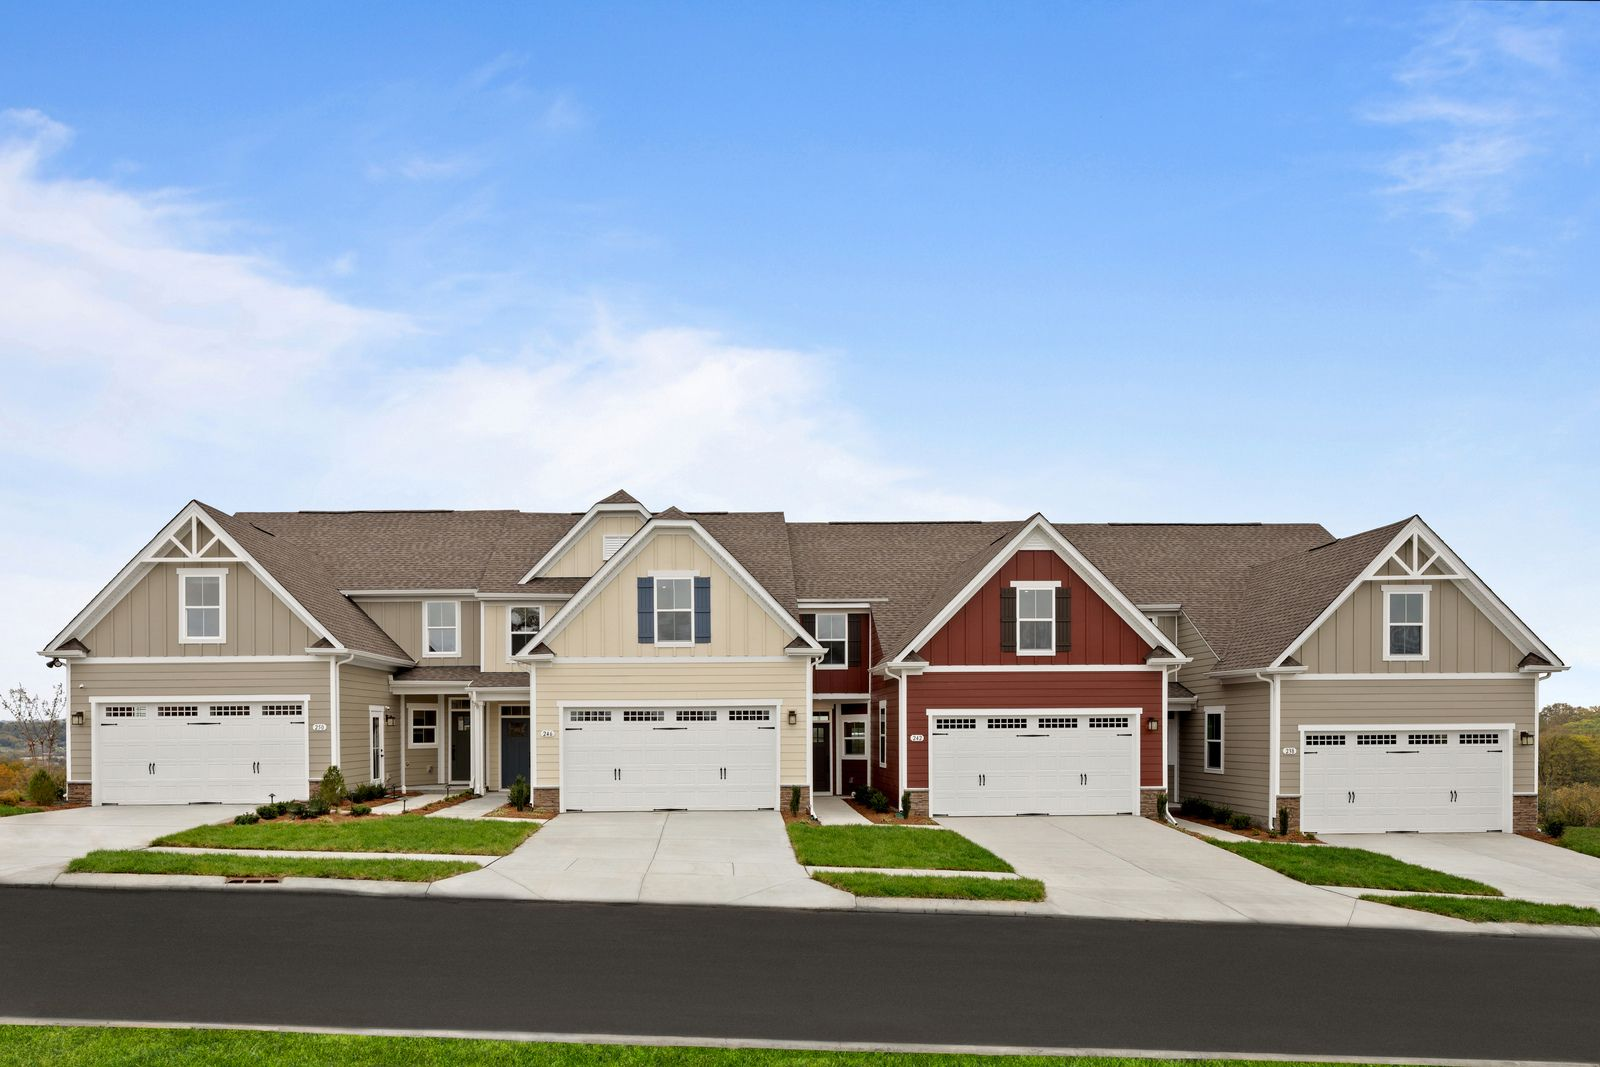 Parkview Preserve - New Townhomes Near Downtown Nashville:Premier townhome community with 1- & 2-car garages, modern, open concepts, and master-down options minutes to I-65 & downtown Nashville.Schedule a visit!